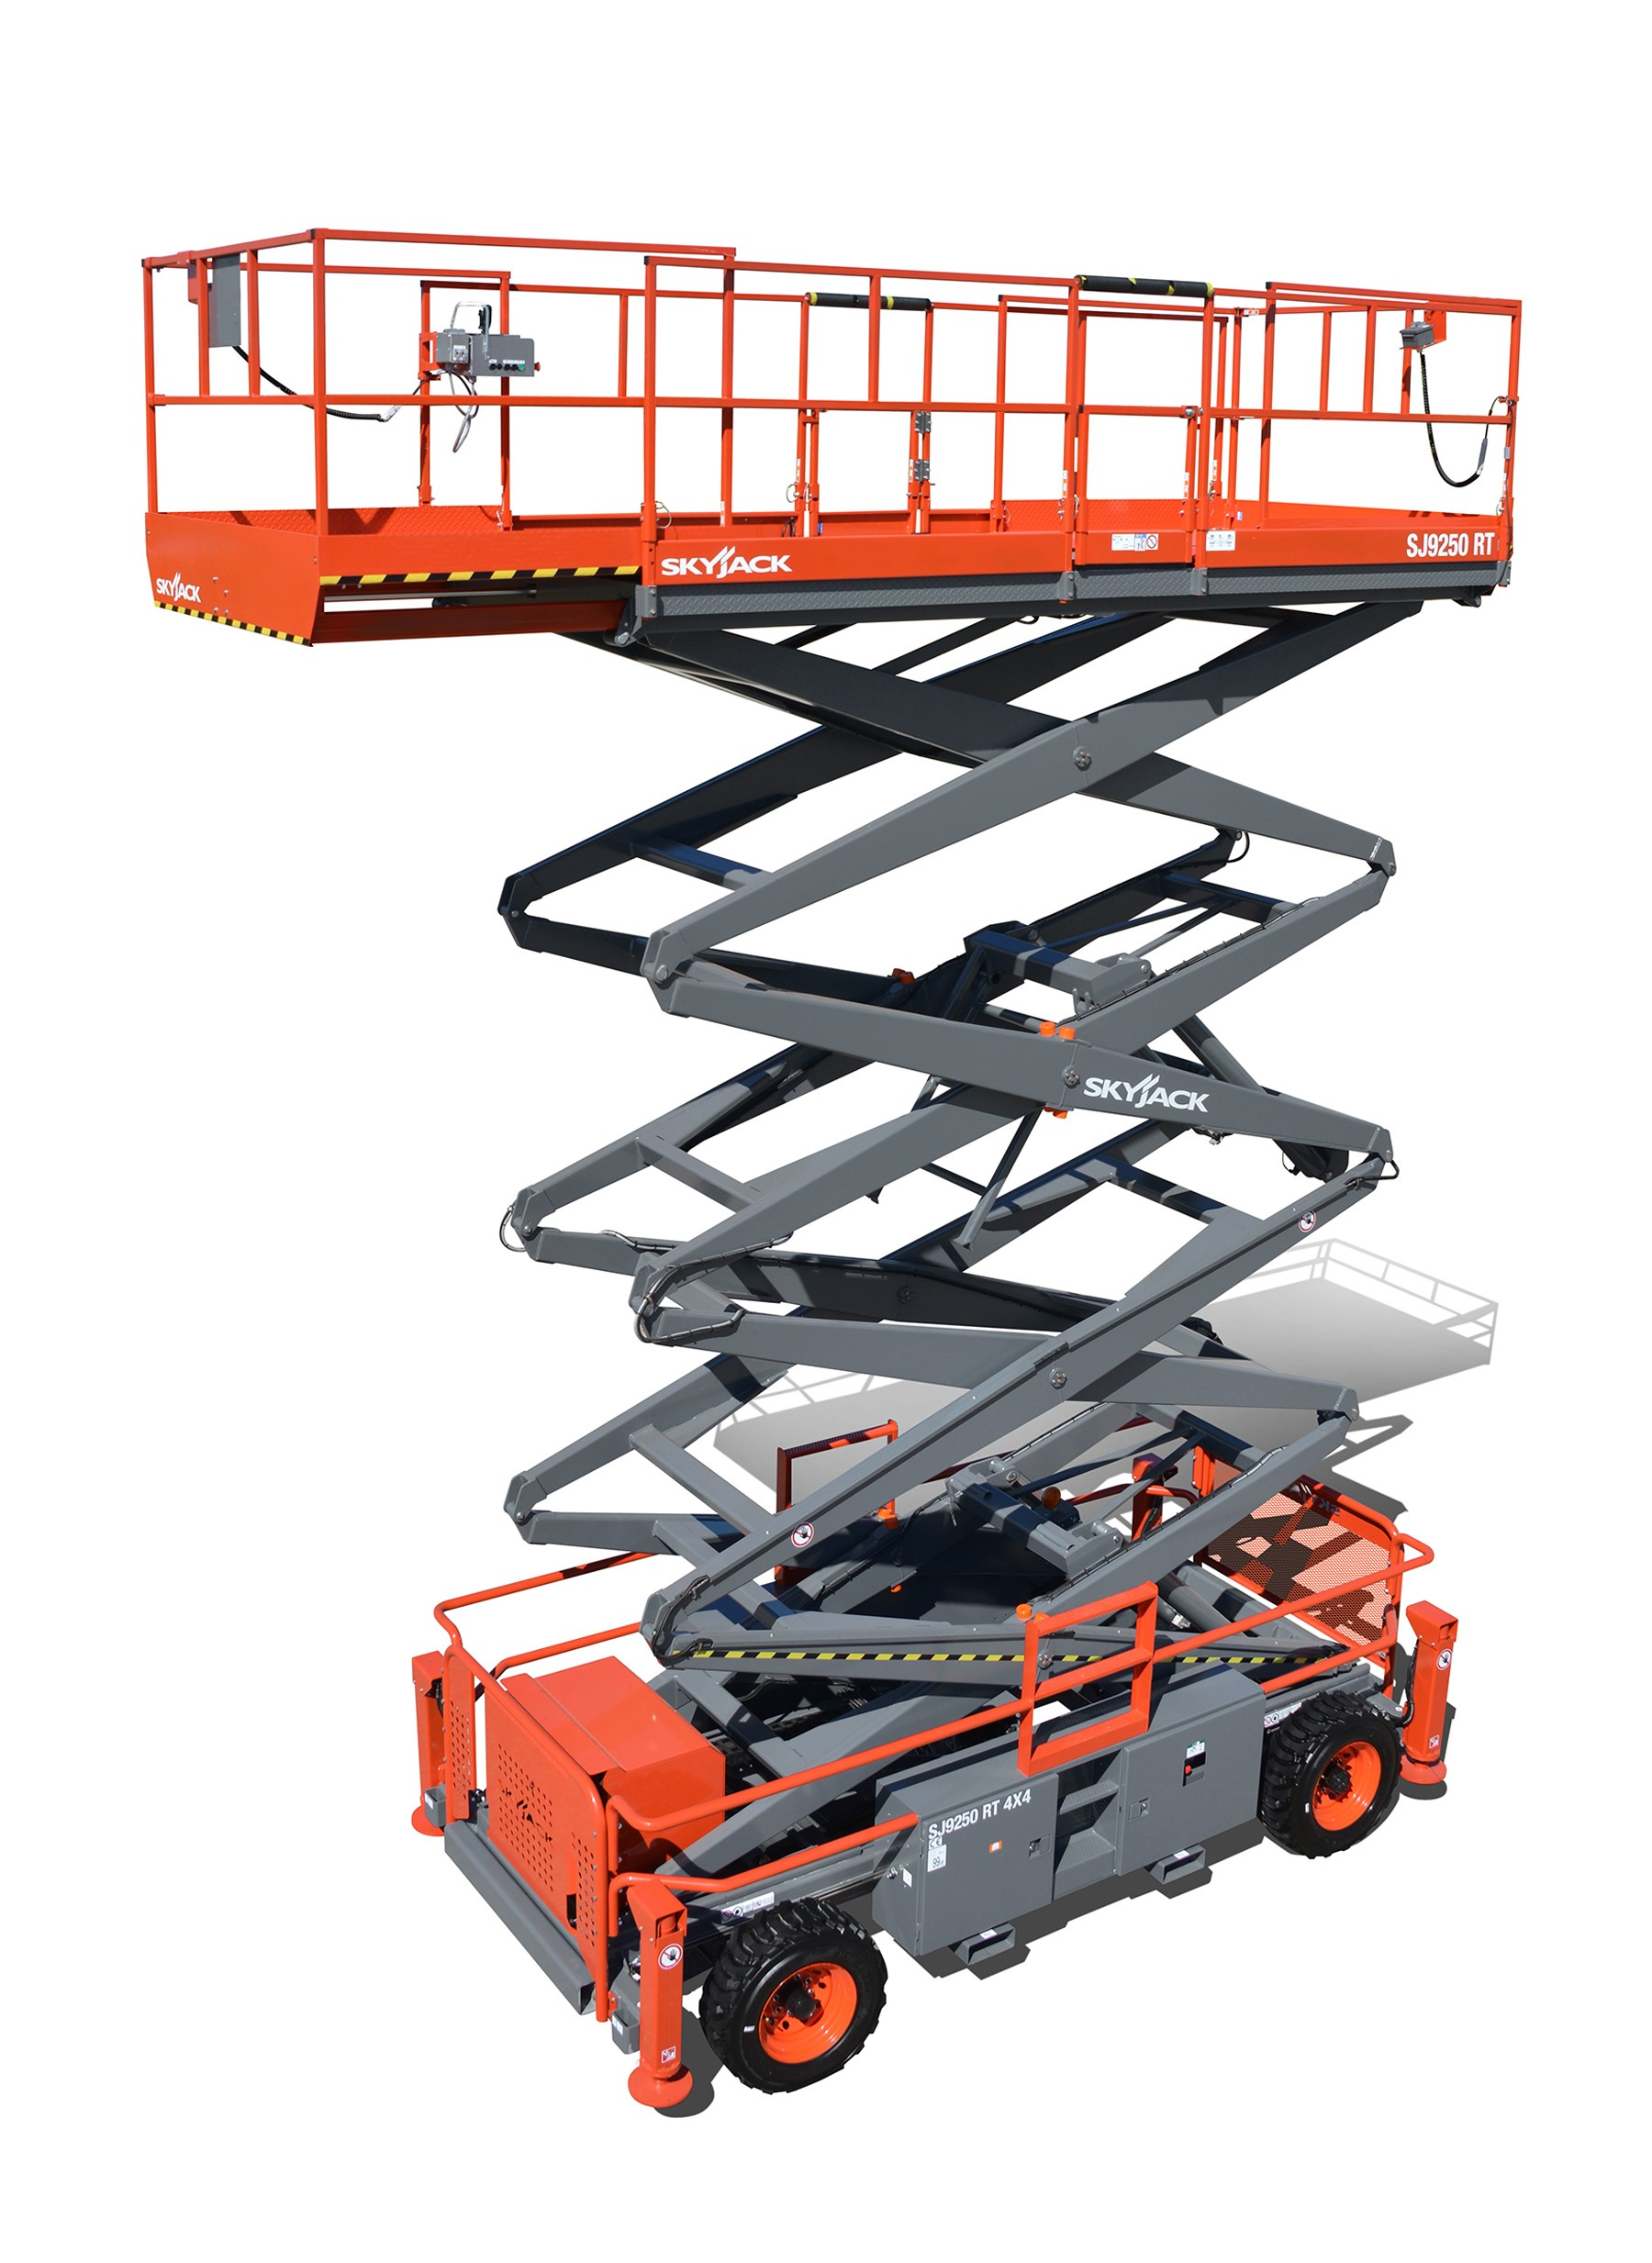 Madison, Wisconsin Skyjack Scissor lift and boom lift rentals